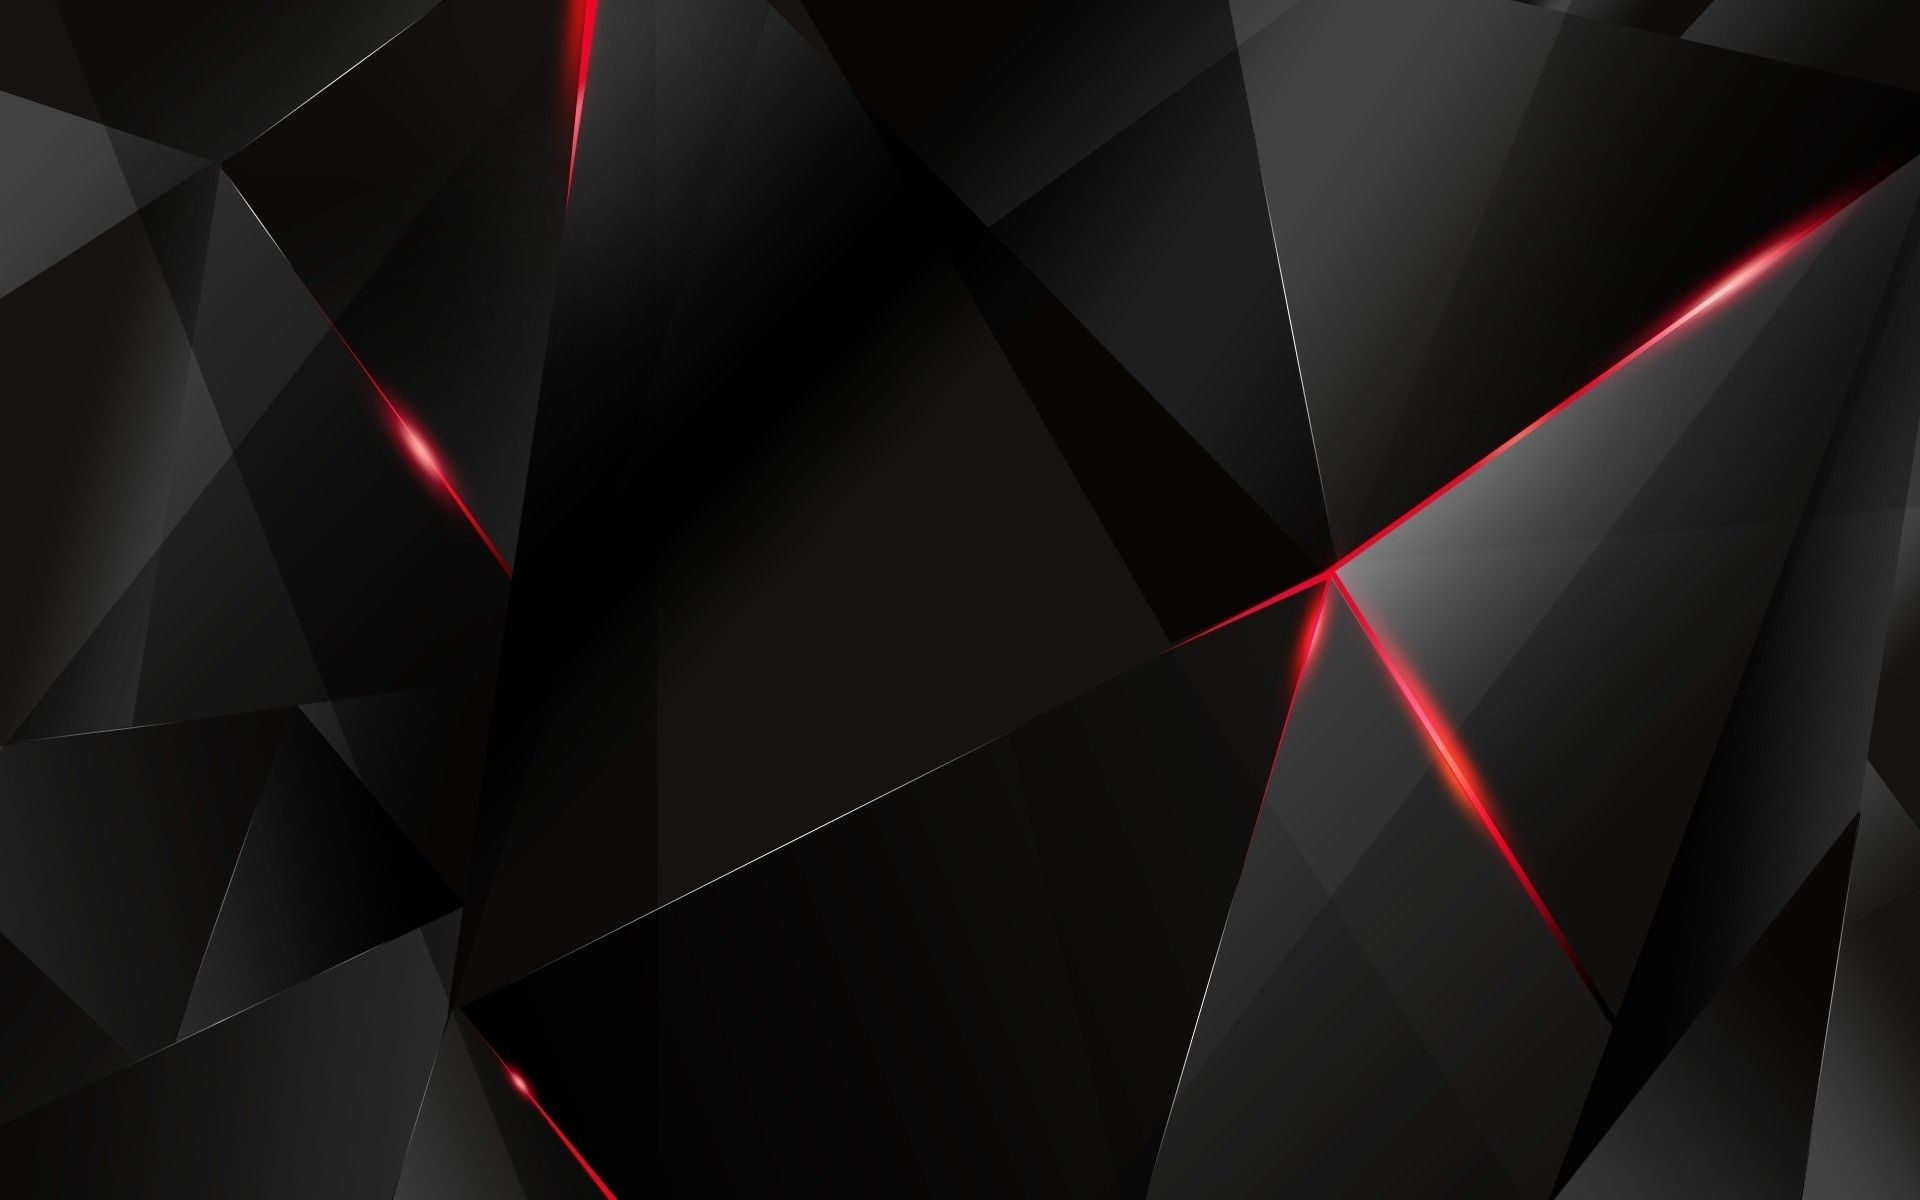 hd black and red wallpapers group (89+)